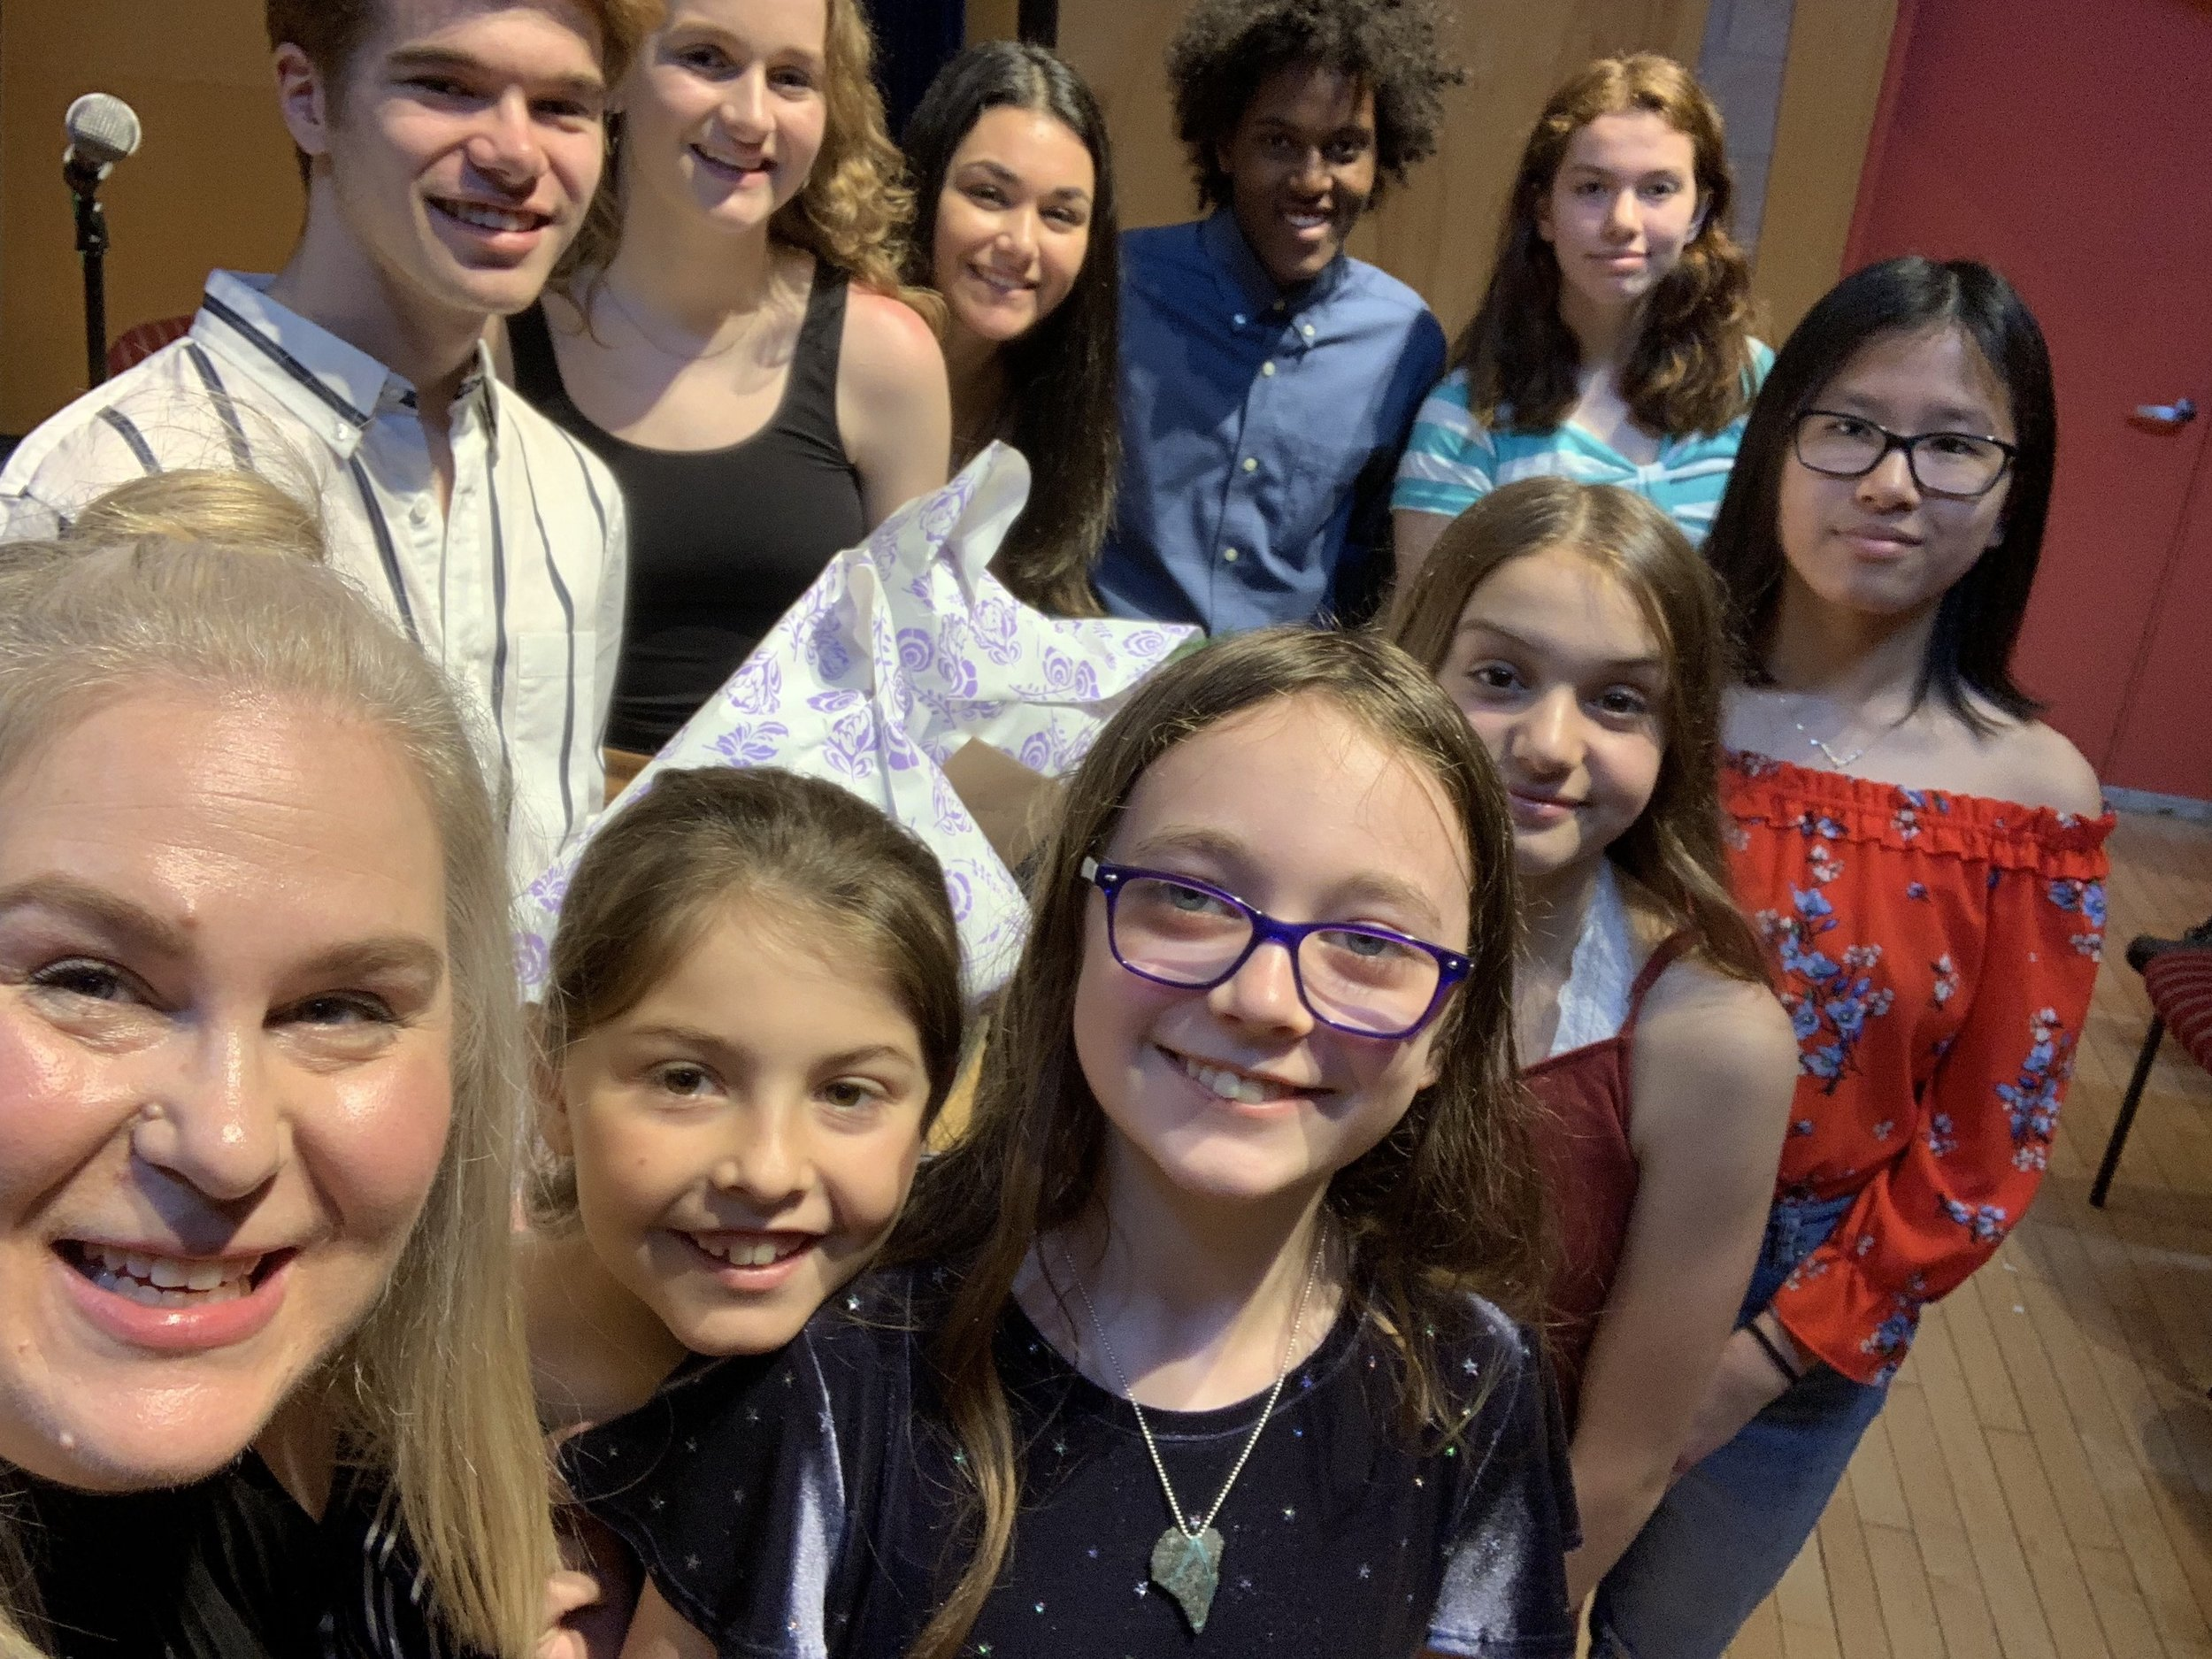 Youth Group Singing Classes - … there are few things more important than connection with peers with the same interests.Bring your kids to Nusong to connect with each other, build confidence and vocal skill in a supportive and positive environment, one note at a time!